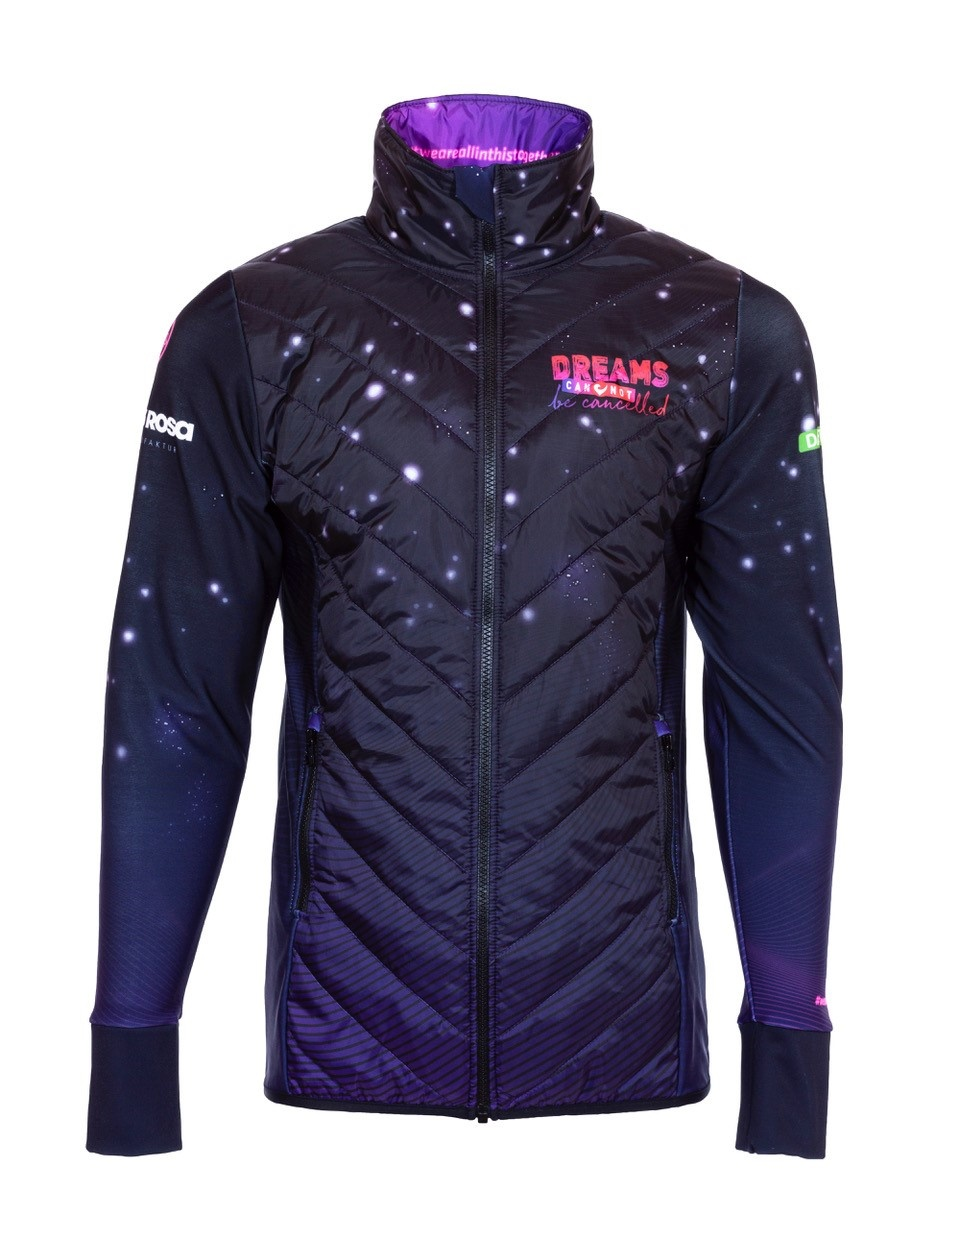 Premium Jacket Dreams cannot be cancelled-1